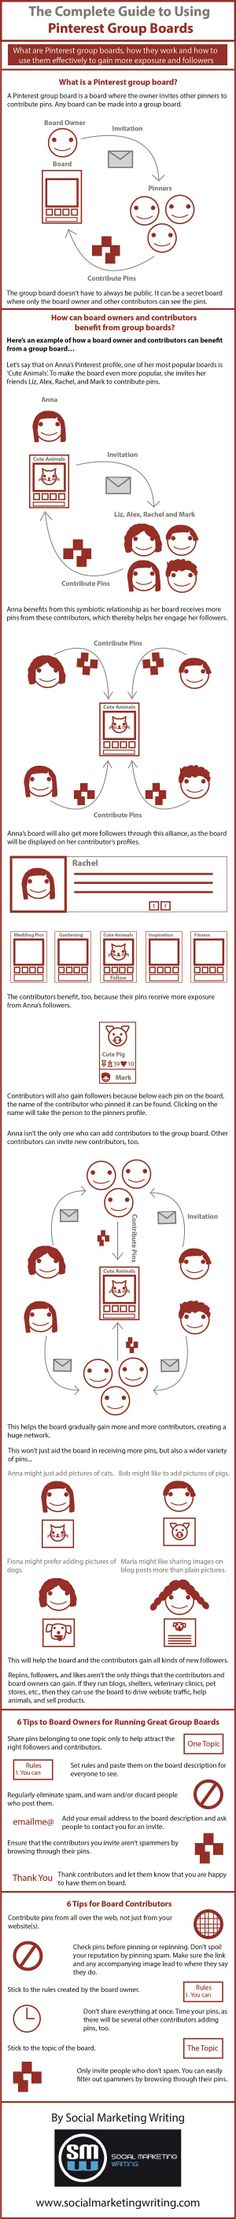 The complete guide to using Pinterest Group Boards #infografia #infographic #socialmedia